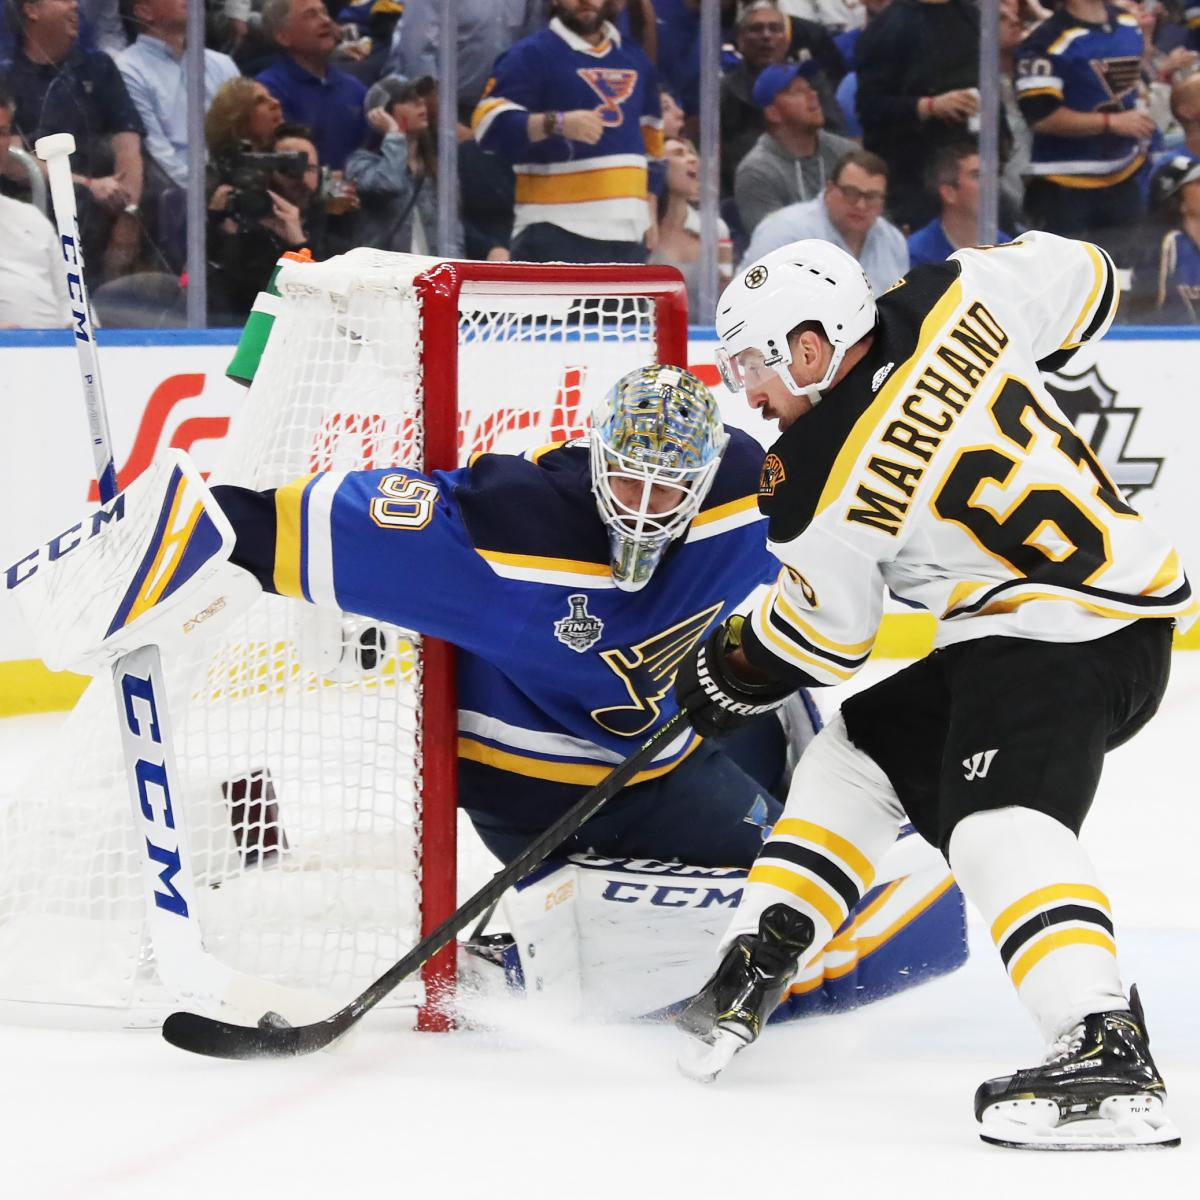 Blues Vs. Bruins Game 5 Odds, TV Schedule, Live Stream For